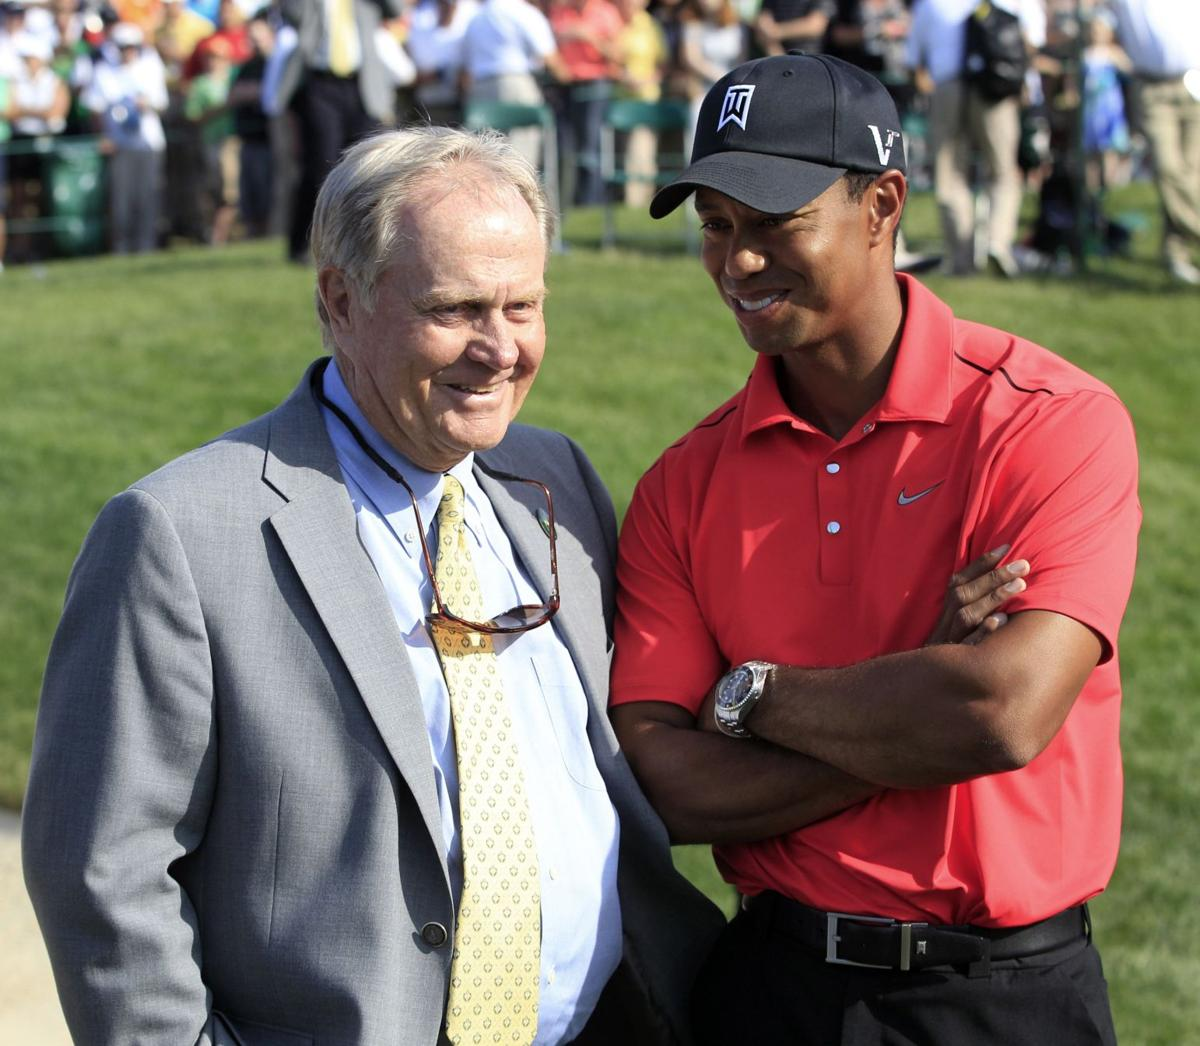 Nicklaus talks about Tiger during Charleston visit